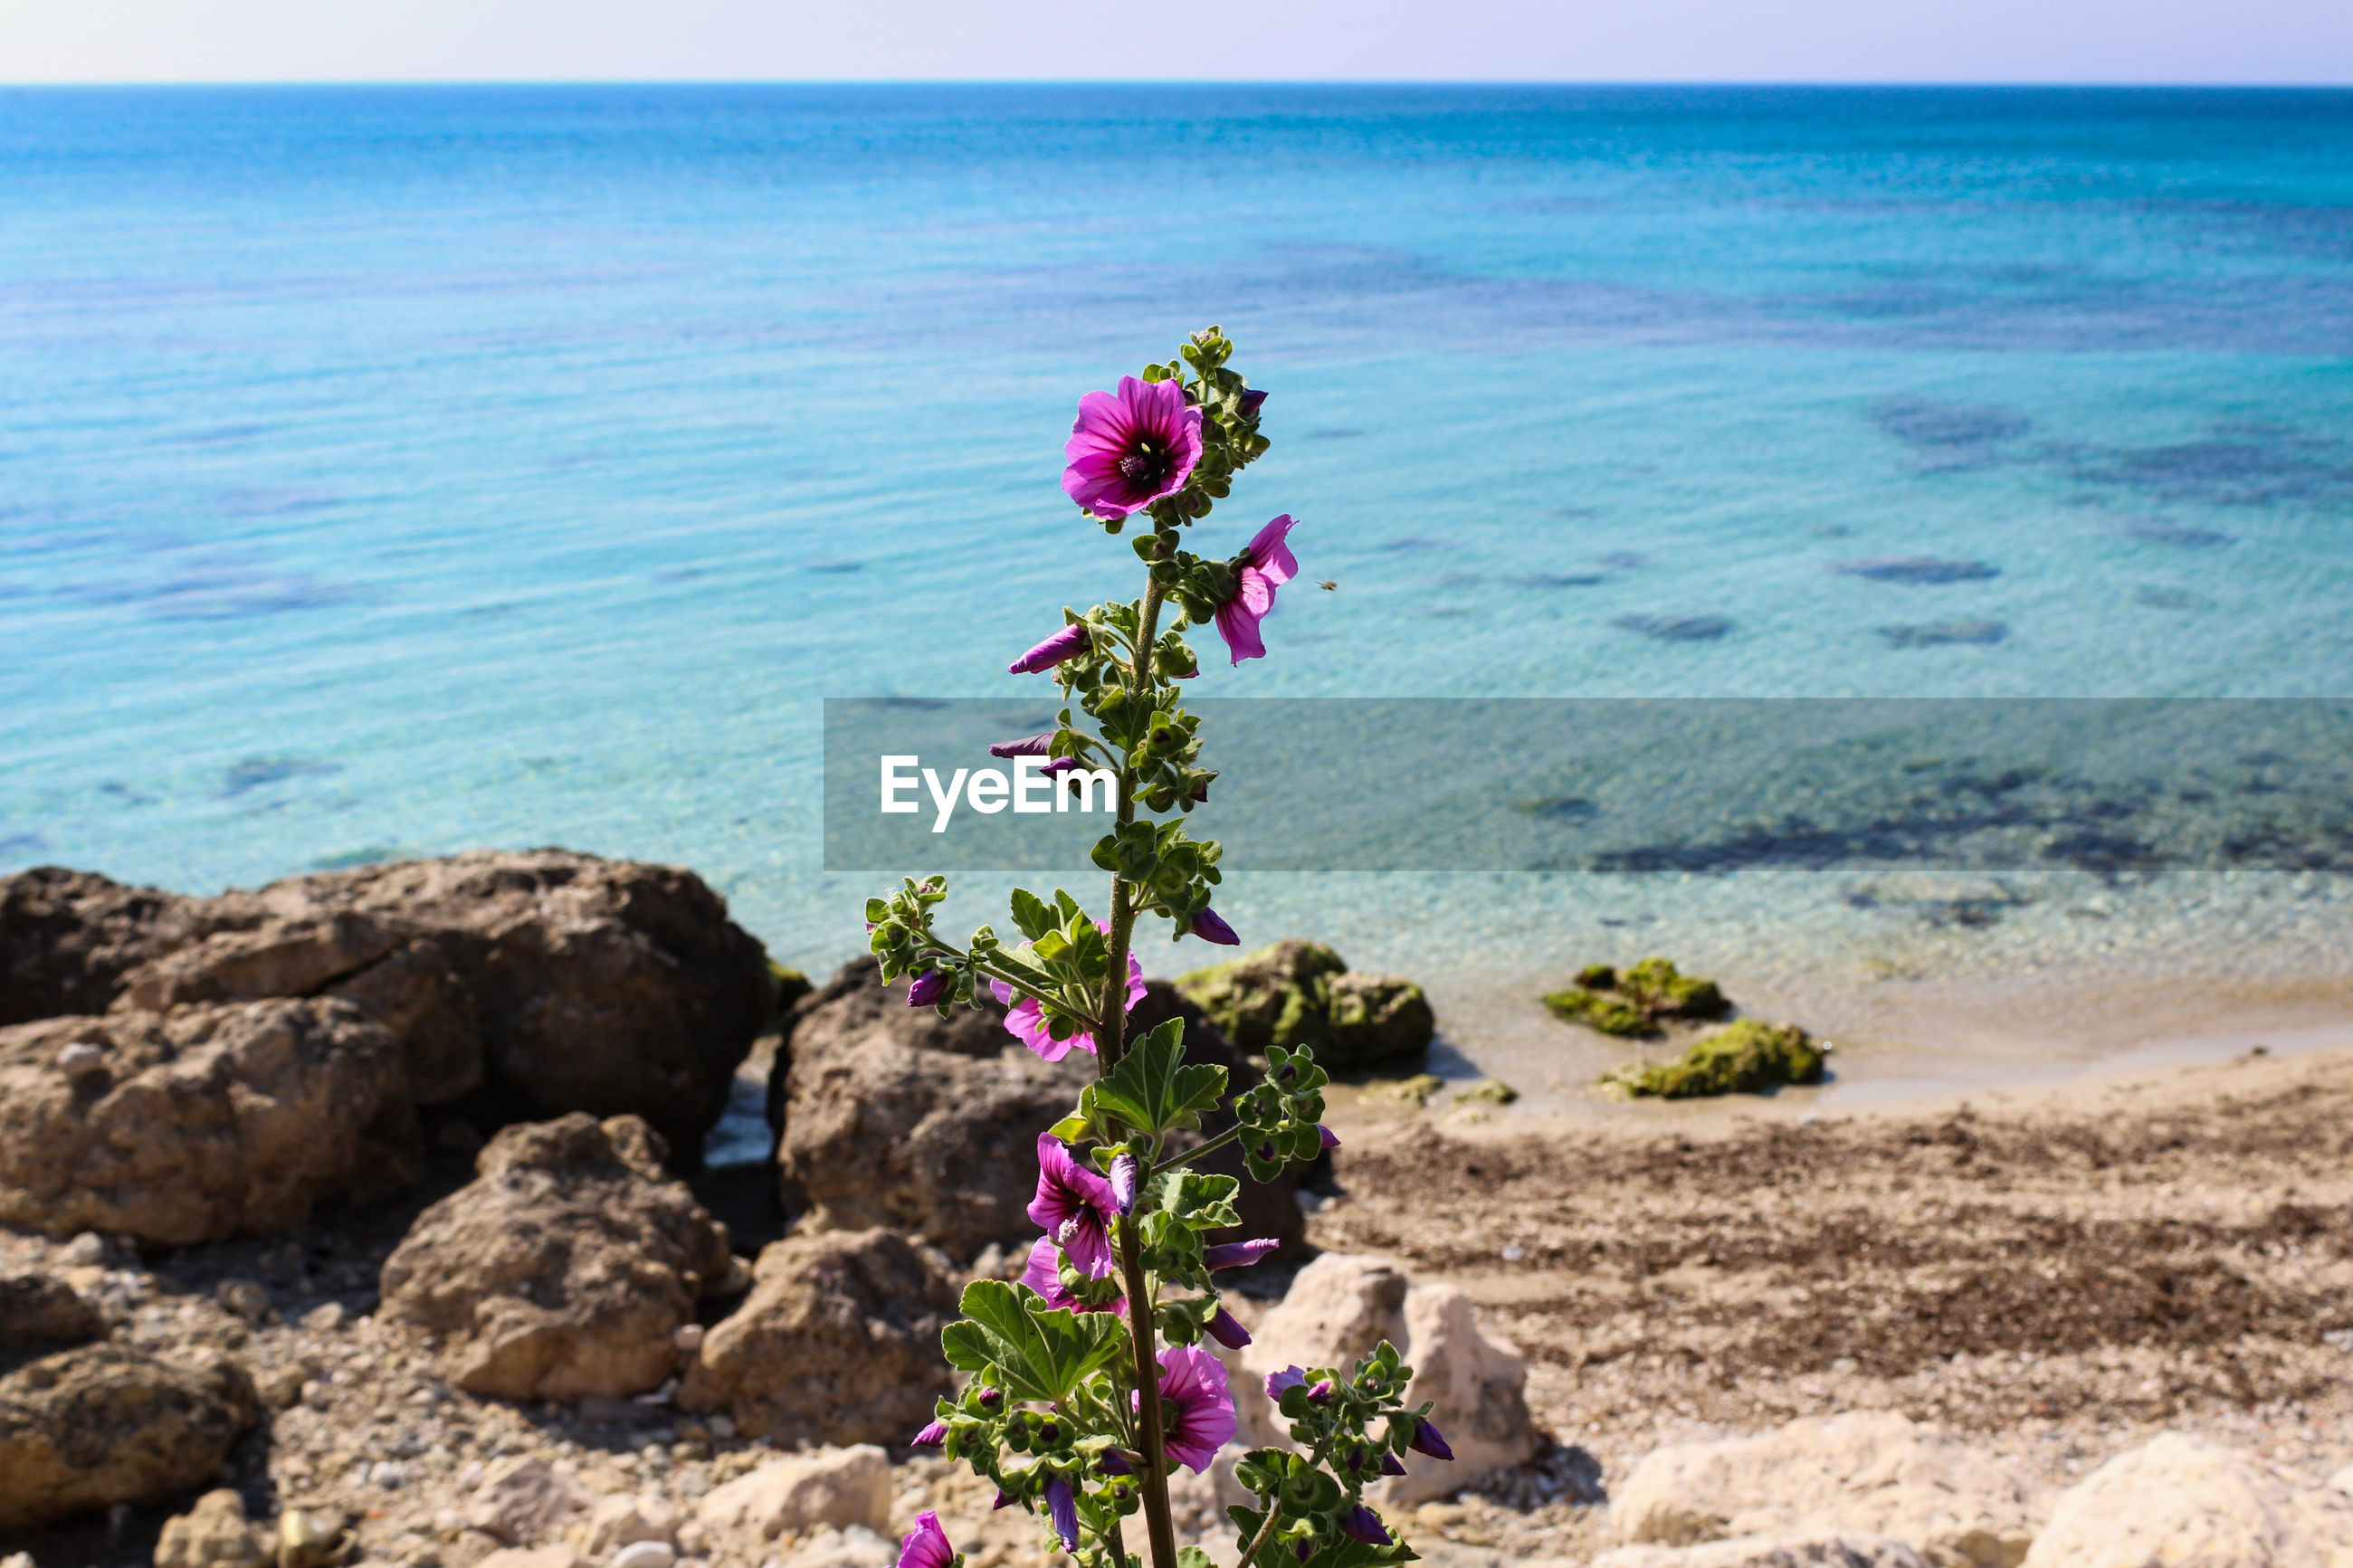 Flowering Plant Flower Beauty In Nature Sea Plant Water Nature Horizon Over Water Horizon Land Beach Freshness Tranquility Tranquil Scene Scenics - Nature Vulnerability  Sky Fragility No People Flower Head Outdoors Purple Salento Puglia Italy Wildflower